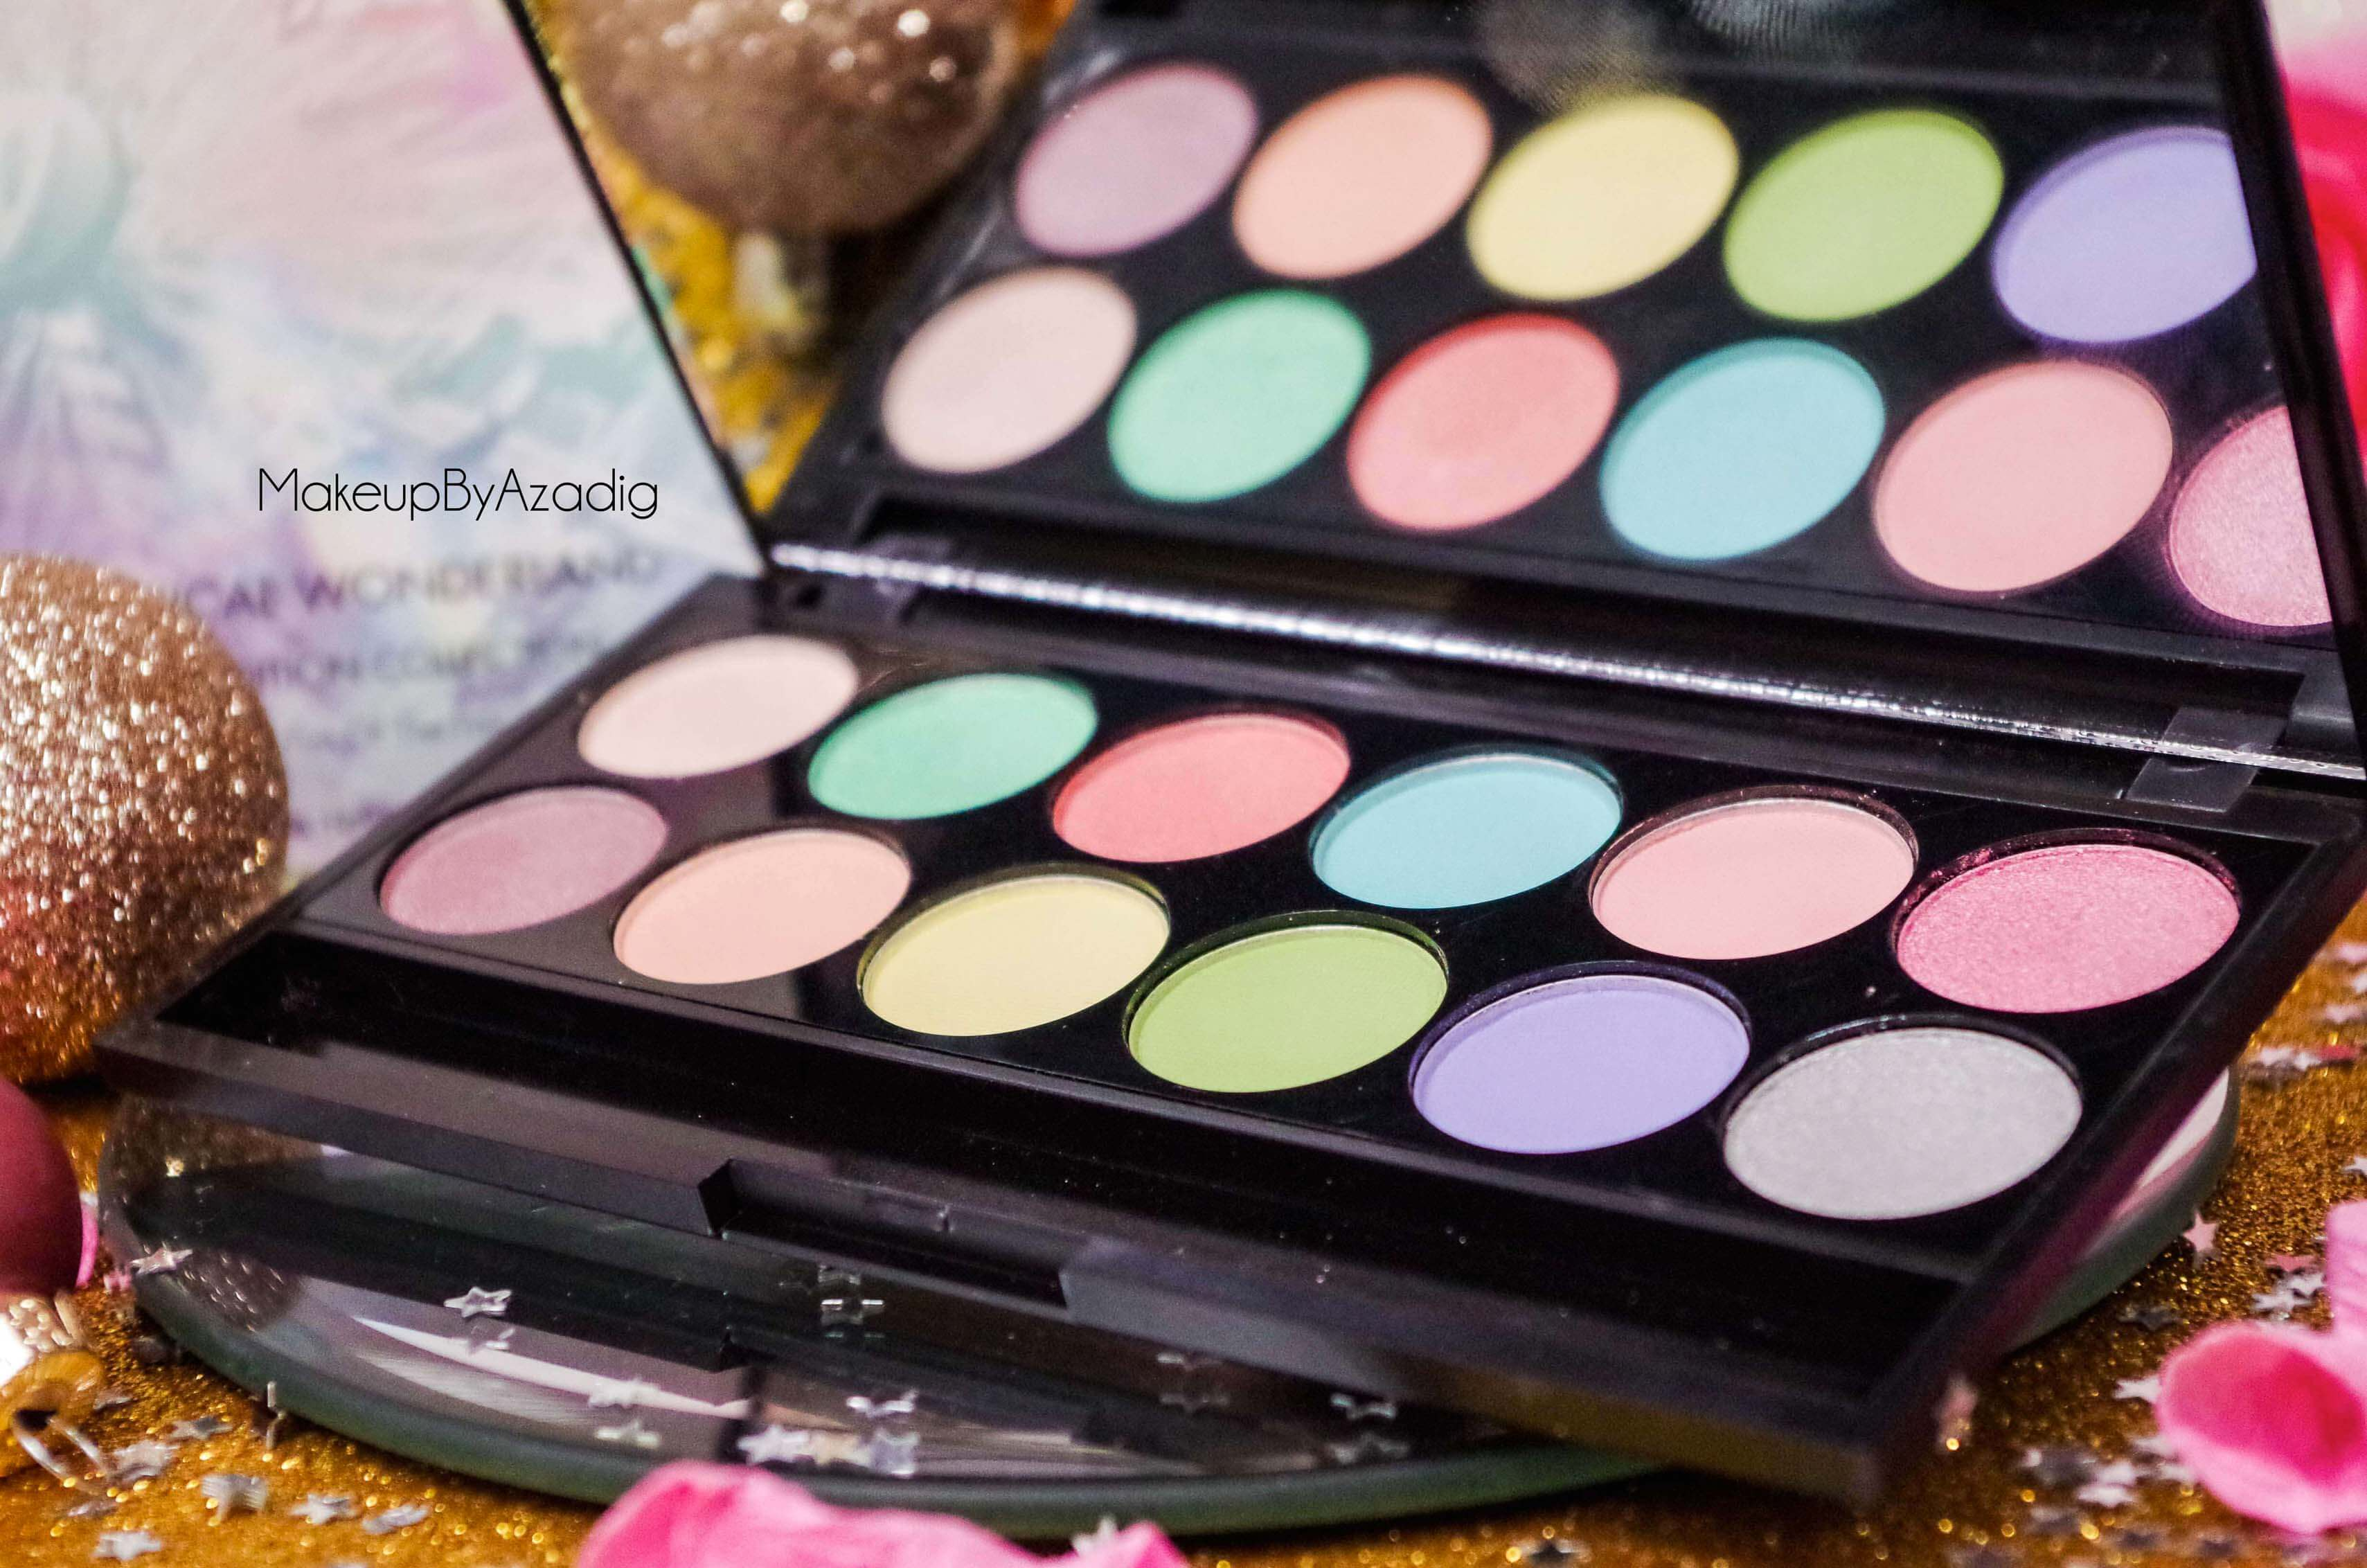 review-palette-sleek-makeup-idivine-pas-cher-sephora-couleurs-allthefunofthefair-code-promo-sephora-paris-makeupbyazadig-france-2